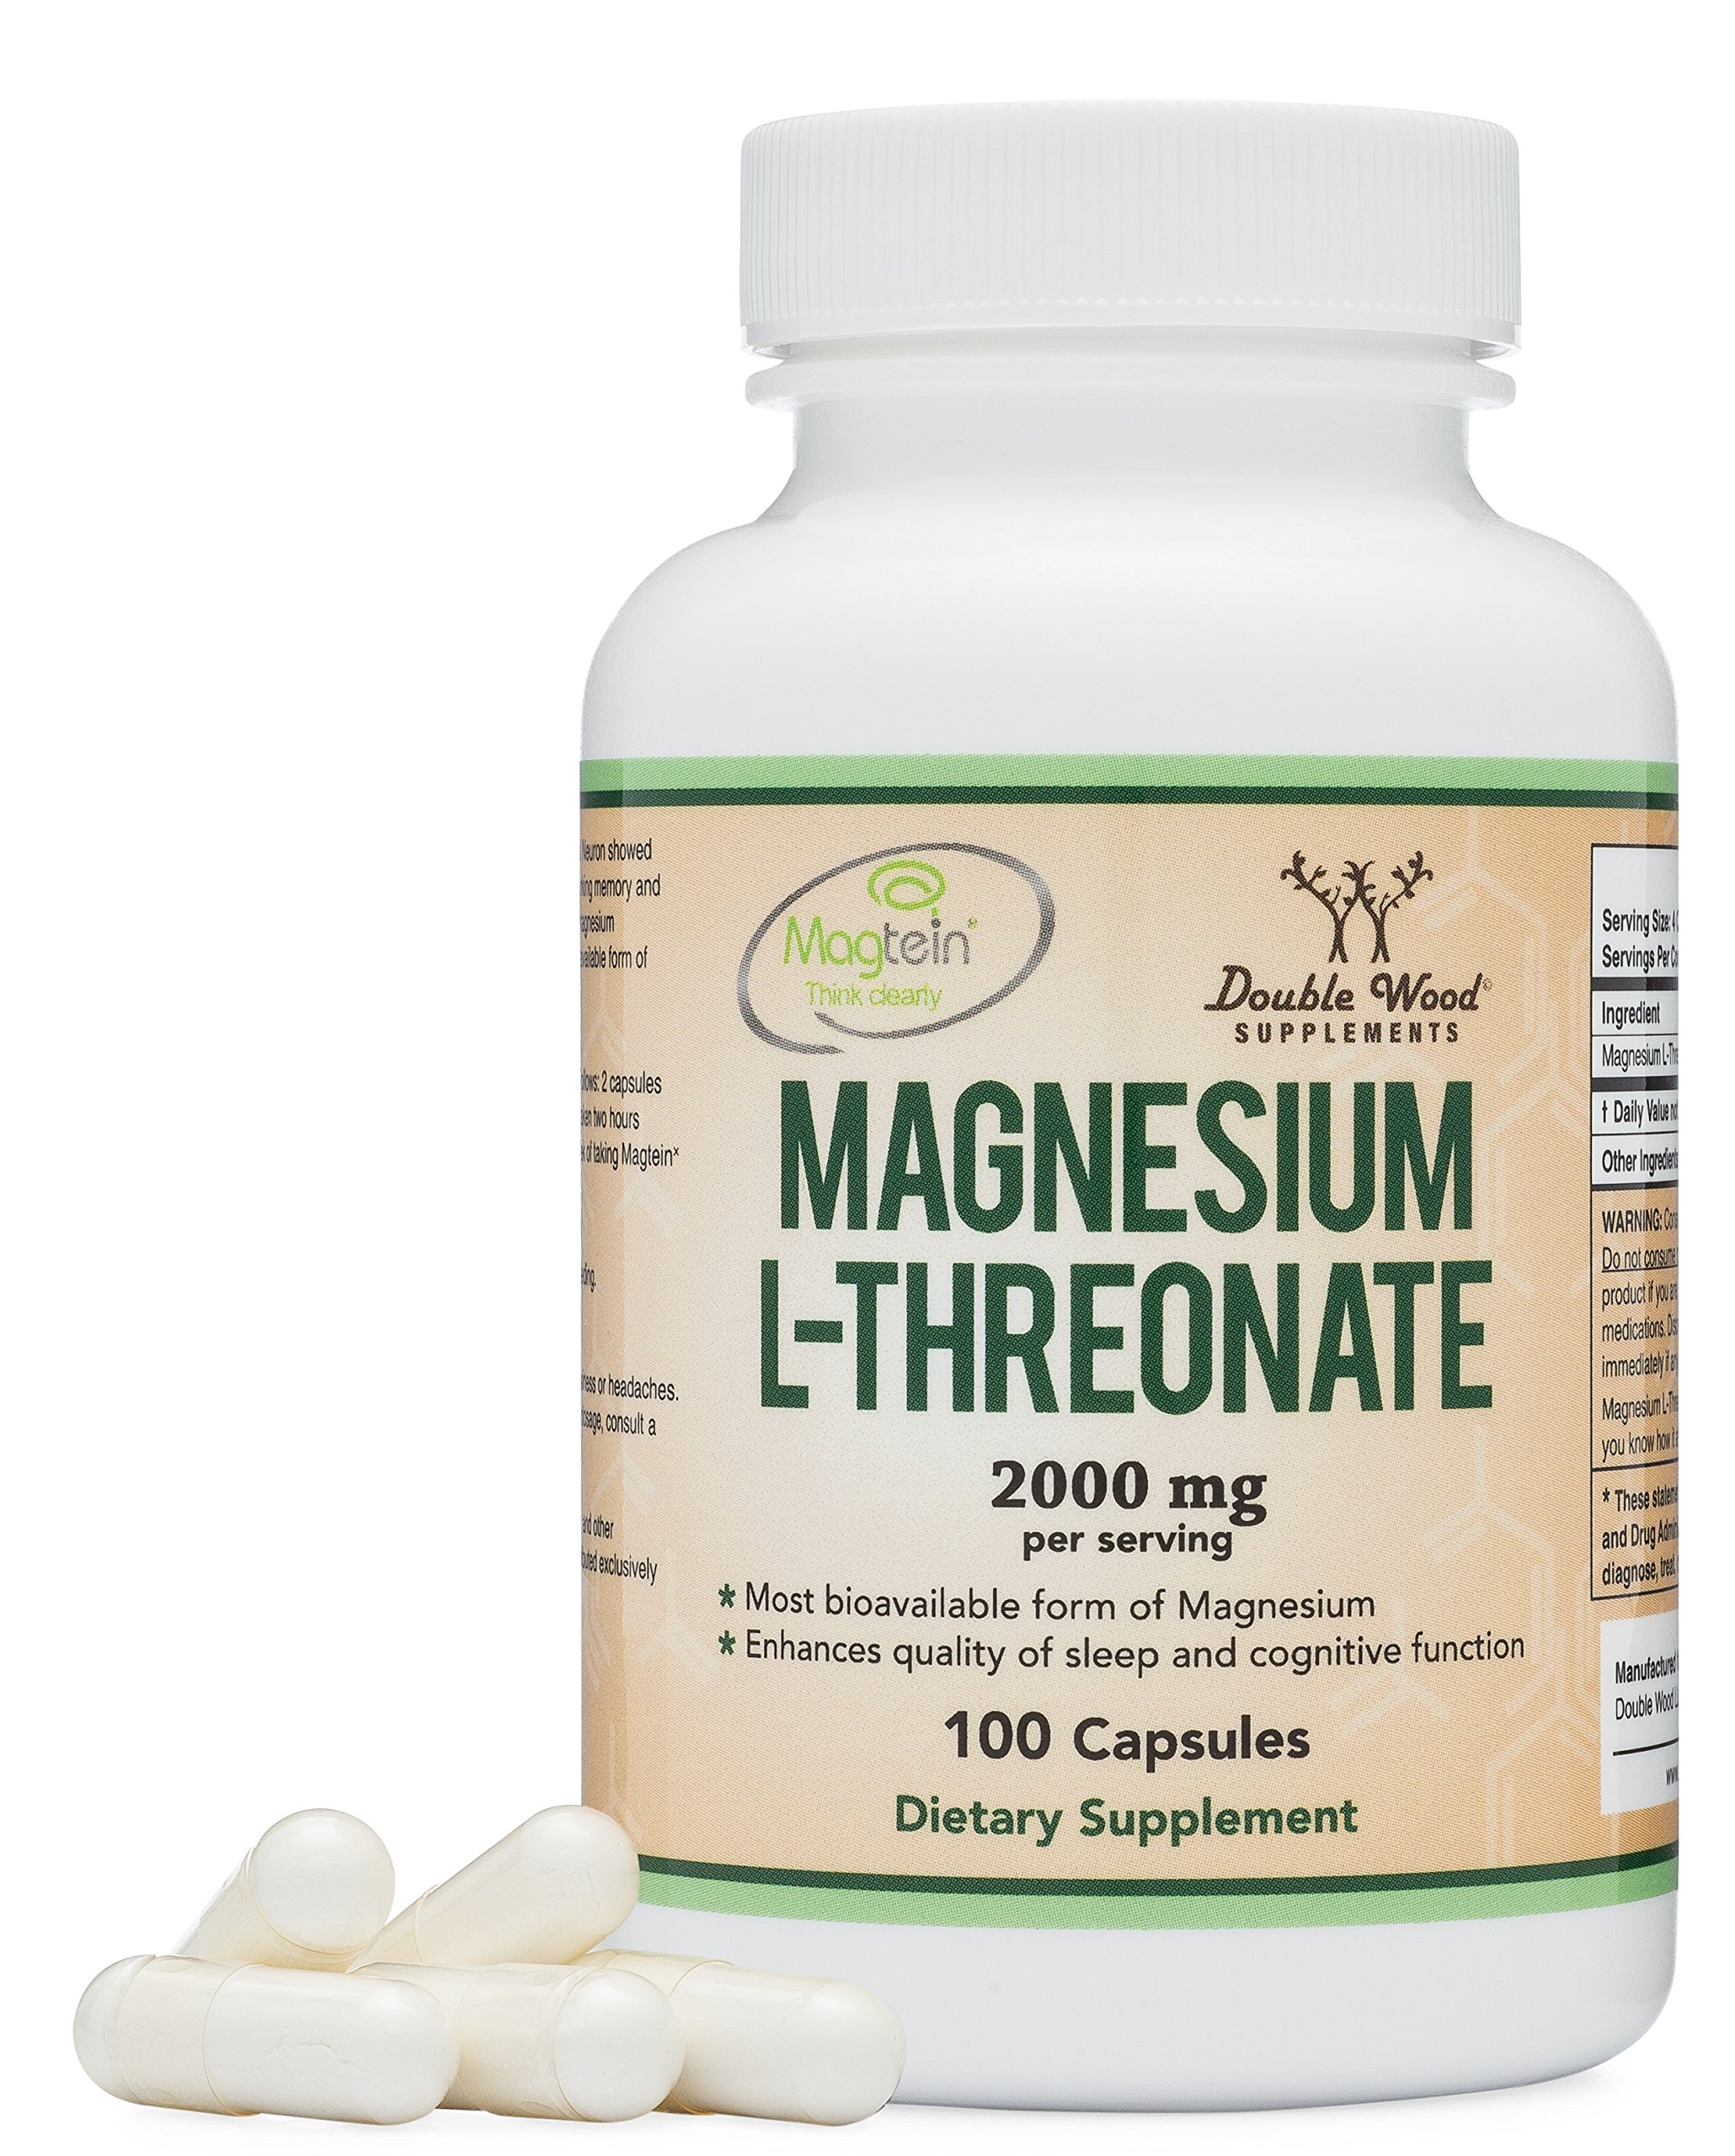 Magnesium L Threonate Capsules (Magtein) – High Absorption Supplement – Most Bioavailable Form – 2,000 mg – 100 Capsules